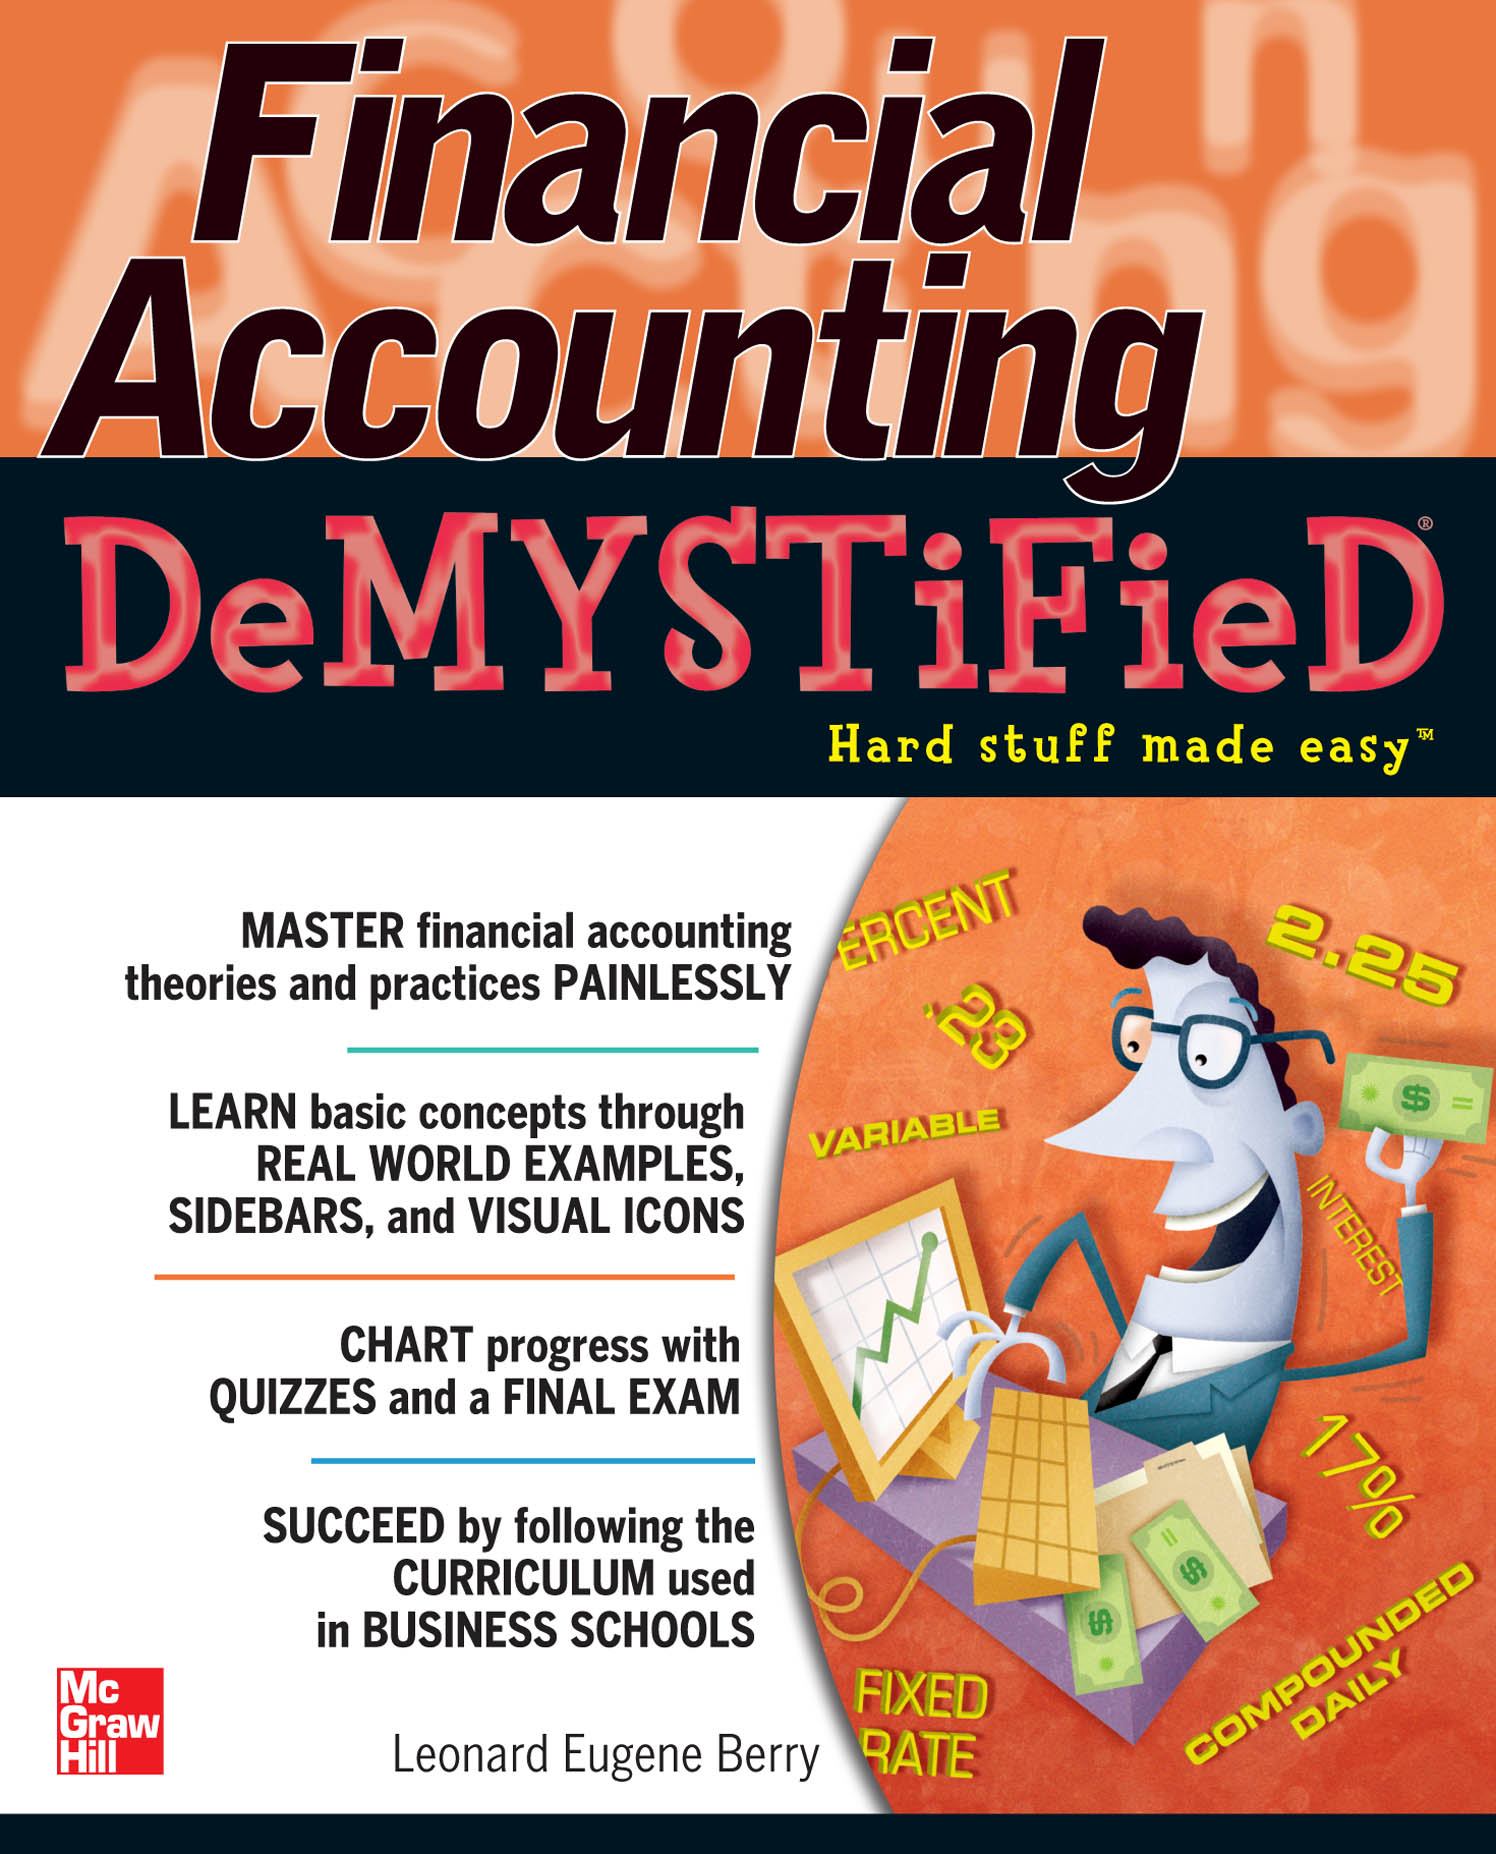 Download Ebook Financial Accounting DeMYSTiFieD by Leonard Eugene Berry Pdf